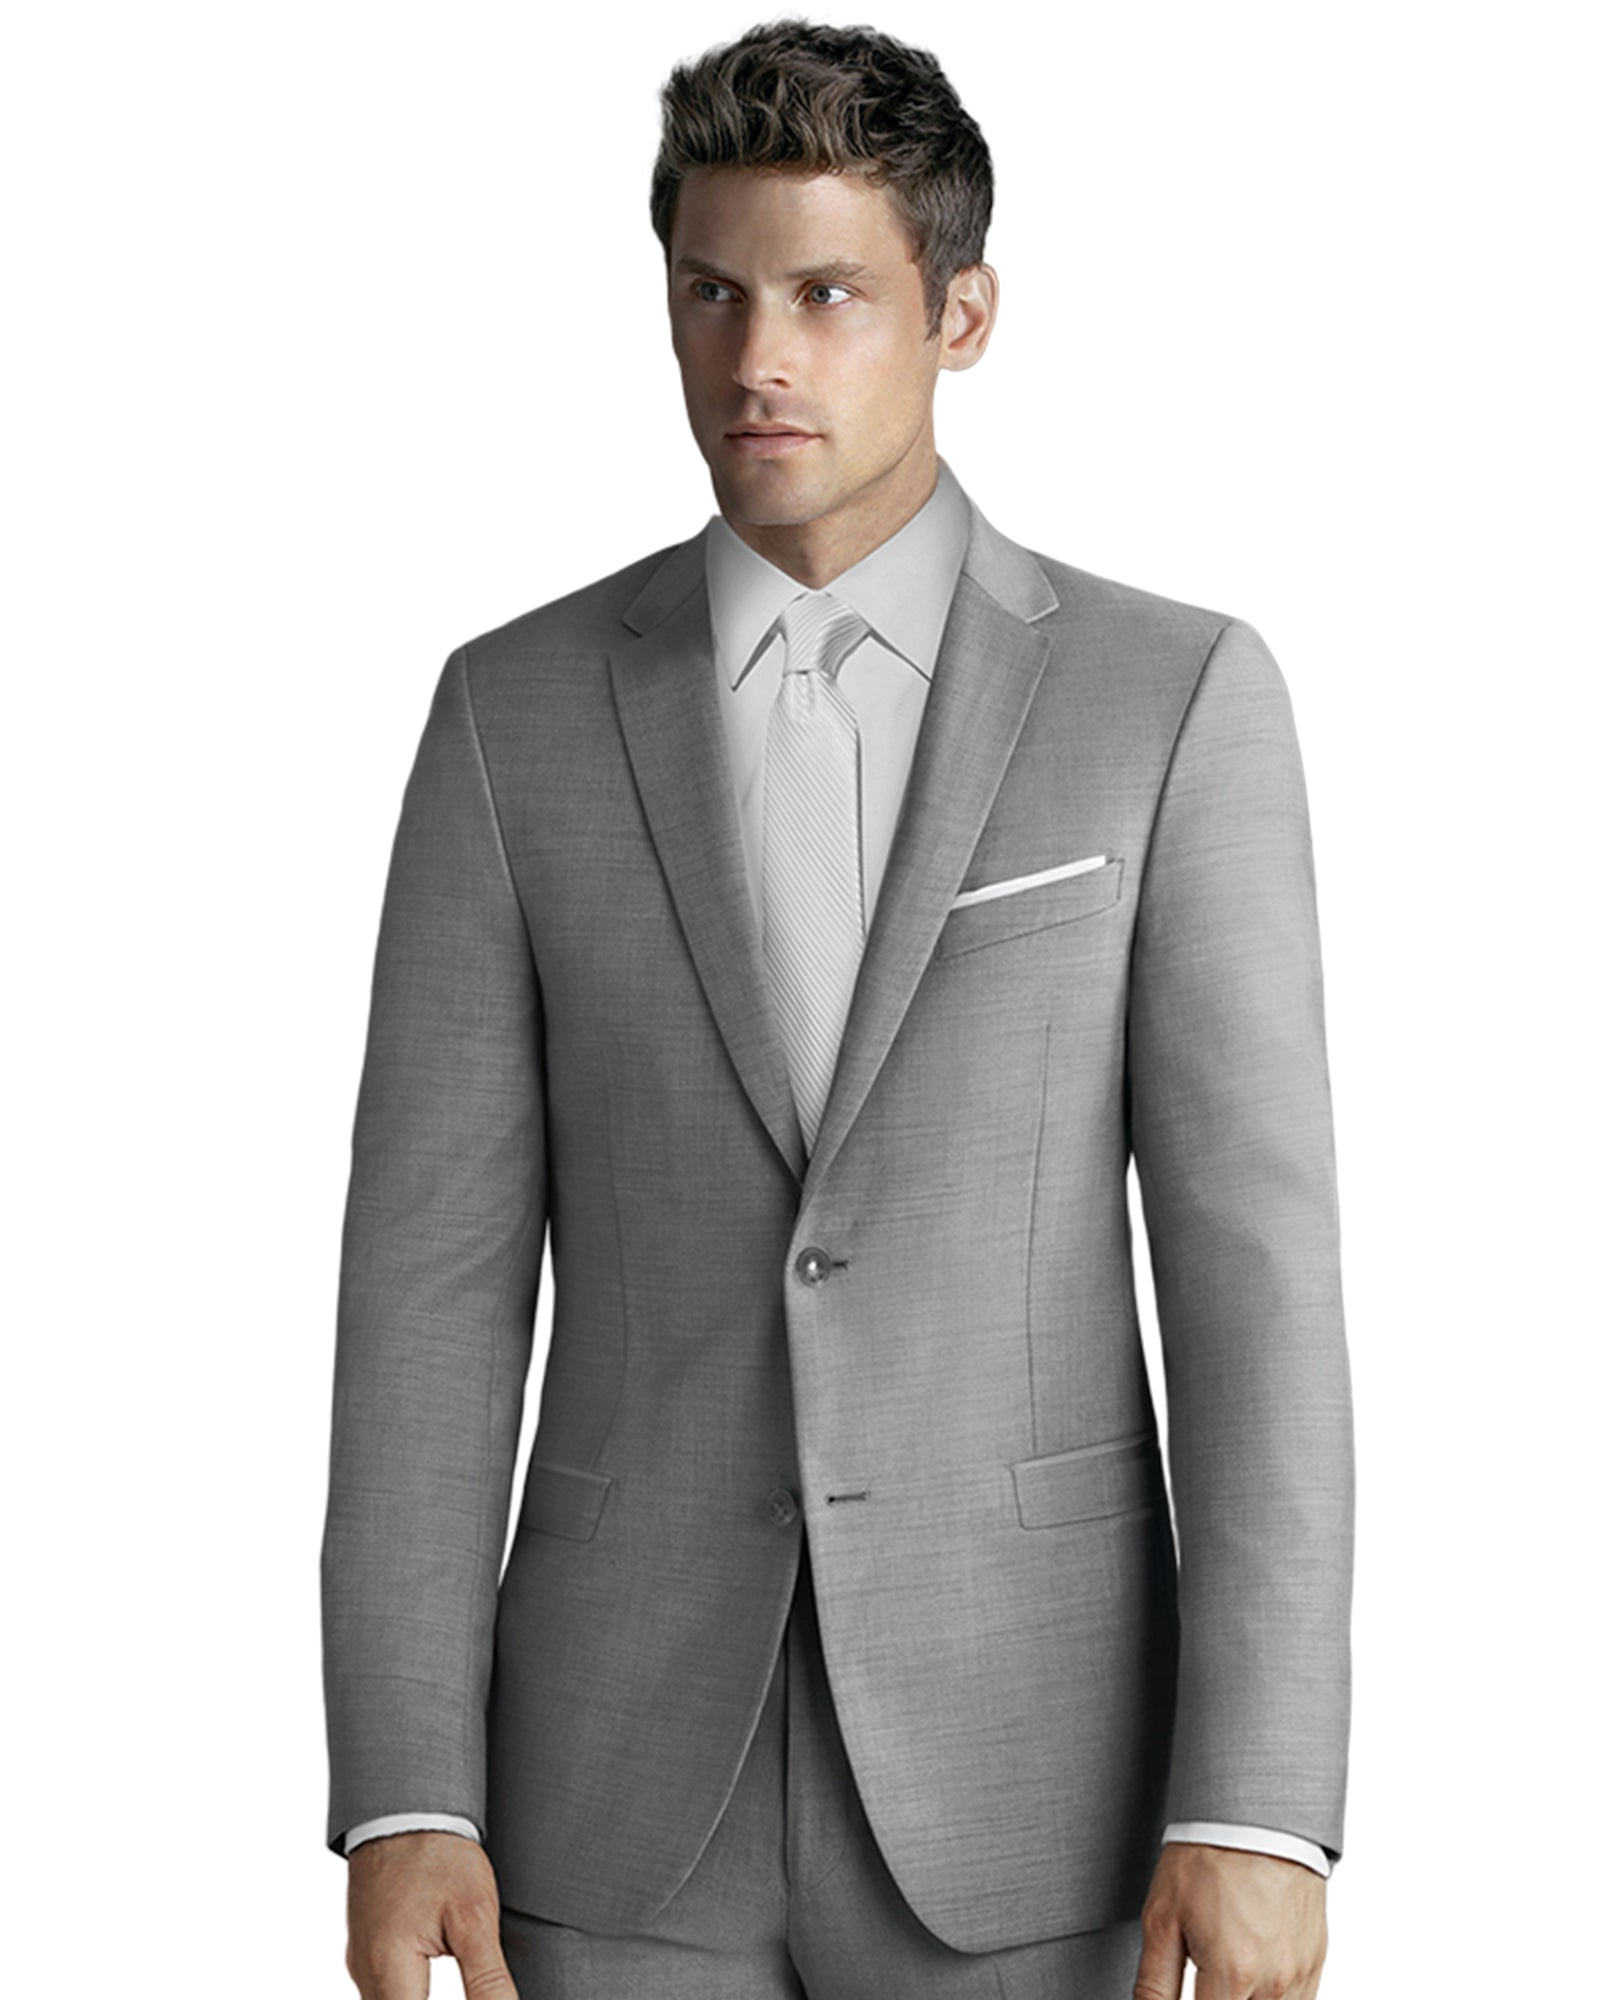 Light Grey Suit Rental - Rainwater's